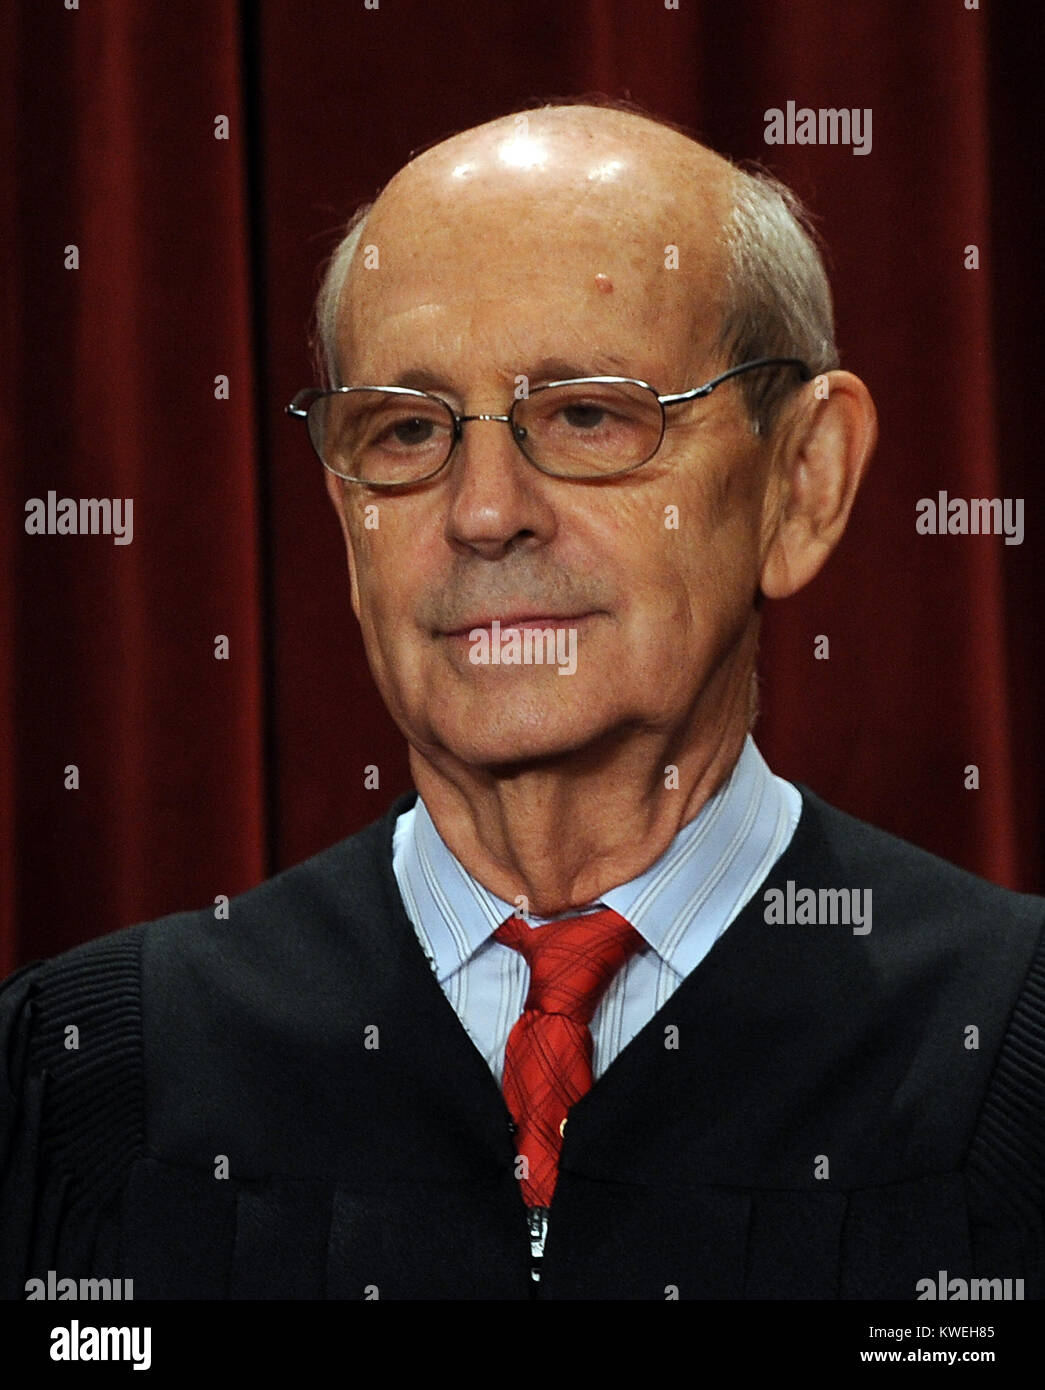 Associate Justice Stephen Breyer and the Supreme Court Justices of the United States sit for a formal group photo - Stock Image